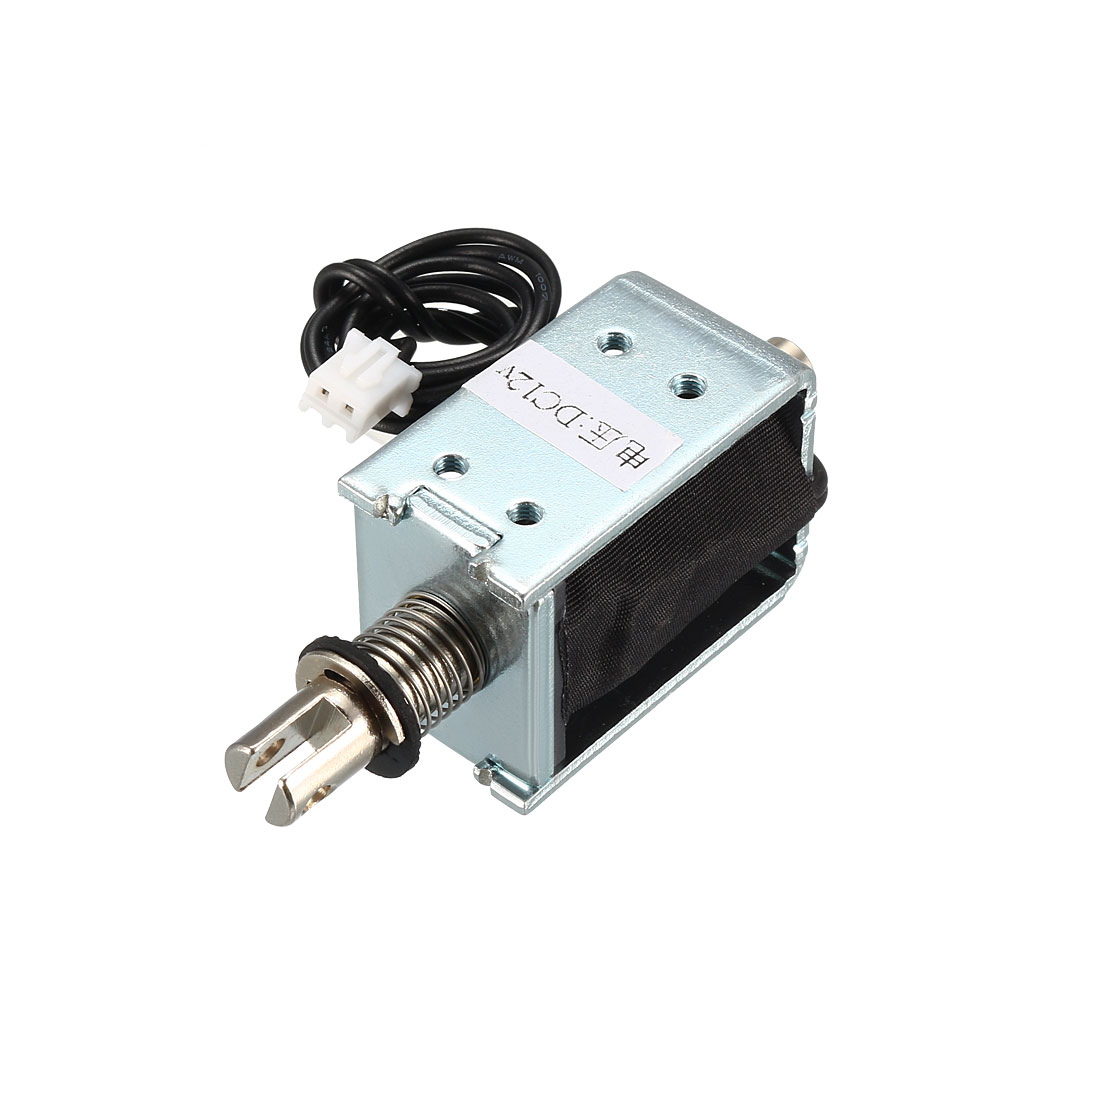 DC 12V 400g 10mm Pull Push Type Solenoid Electromagnet, Open Frame, Linear Motion